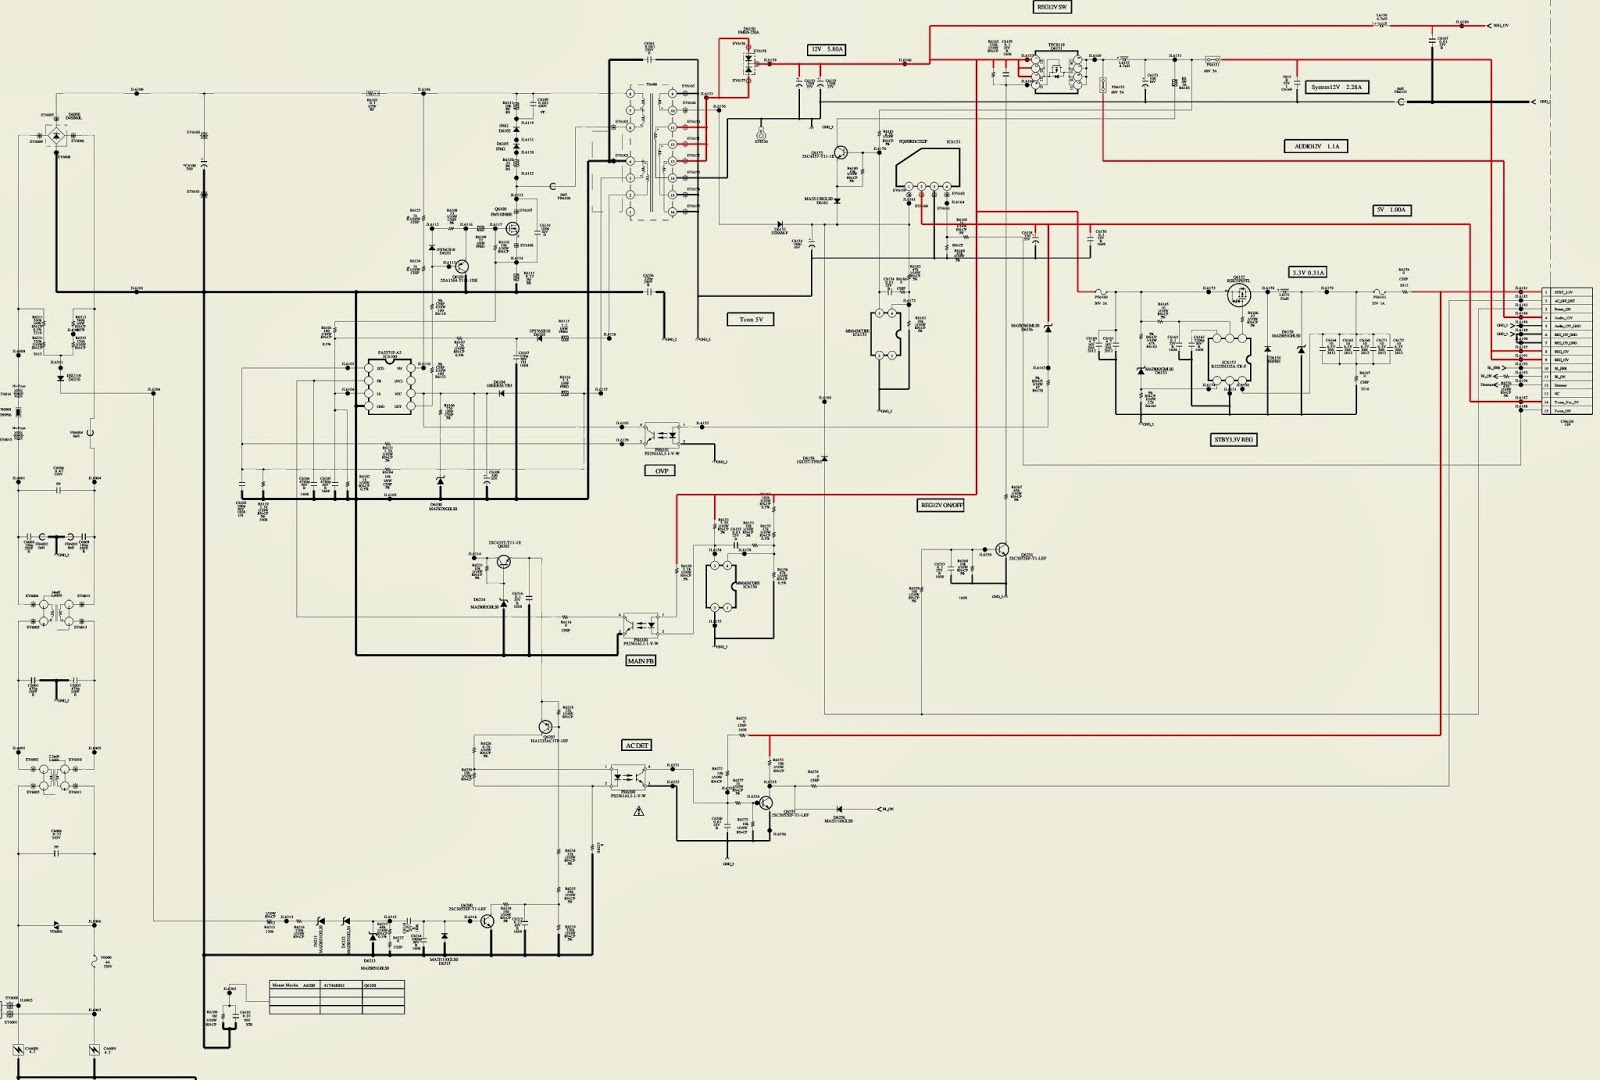 Sony Kdl32bx300 Kdl22bx300 Lcd Tv Smps Power Supply Circuit Diagram Together With Led Schematic